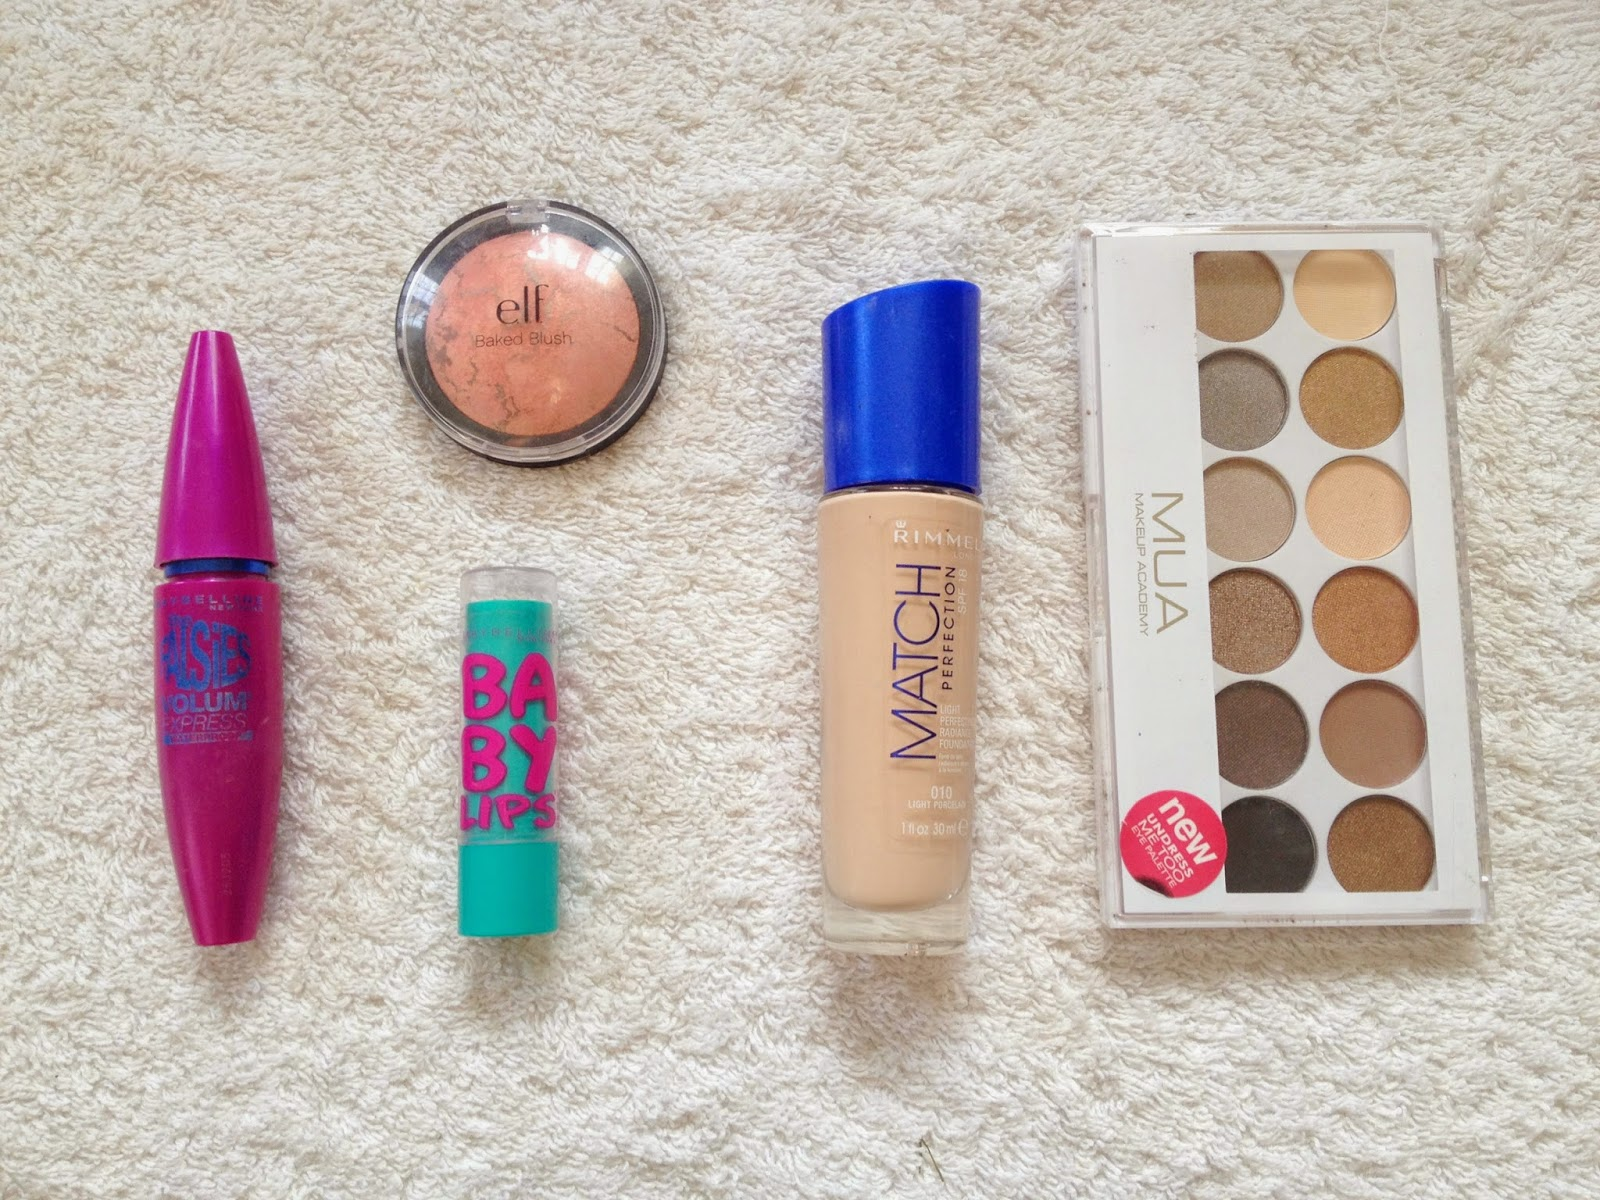 5 Product Face Tag featuring Maybelline, MUA, Rimmel and elf